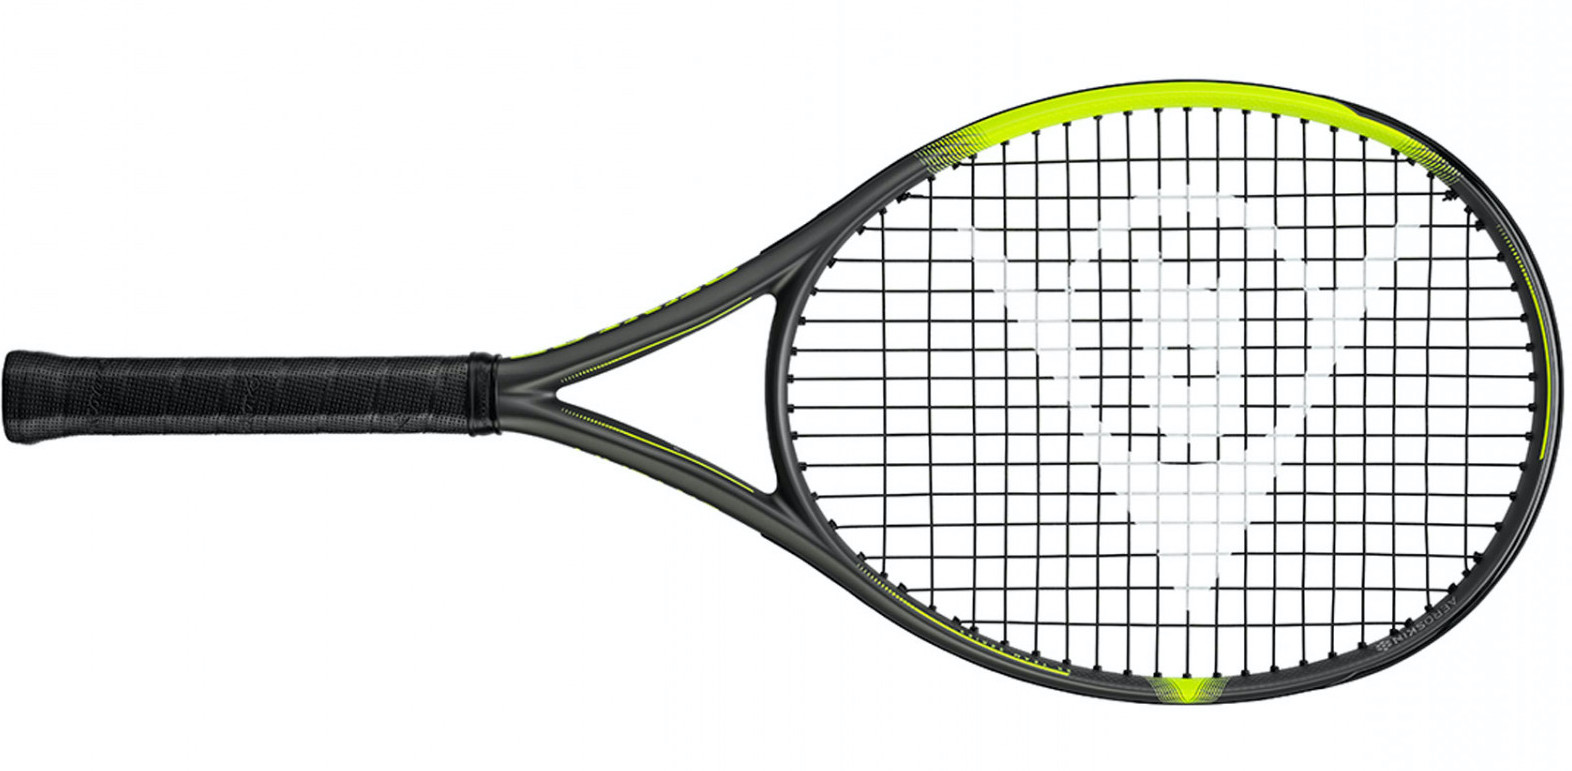 Dunlop SX Team 260 Tennisracket